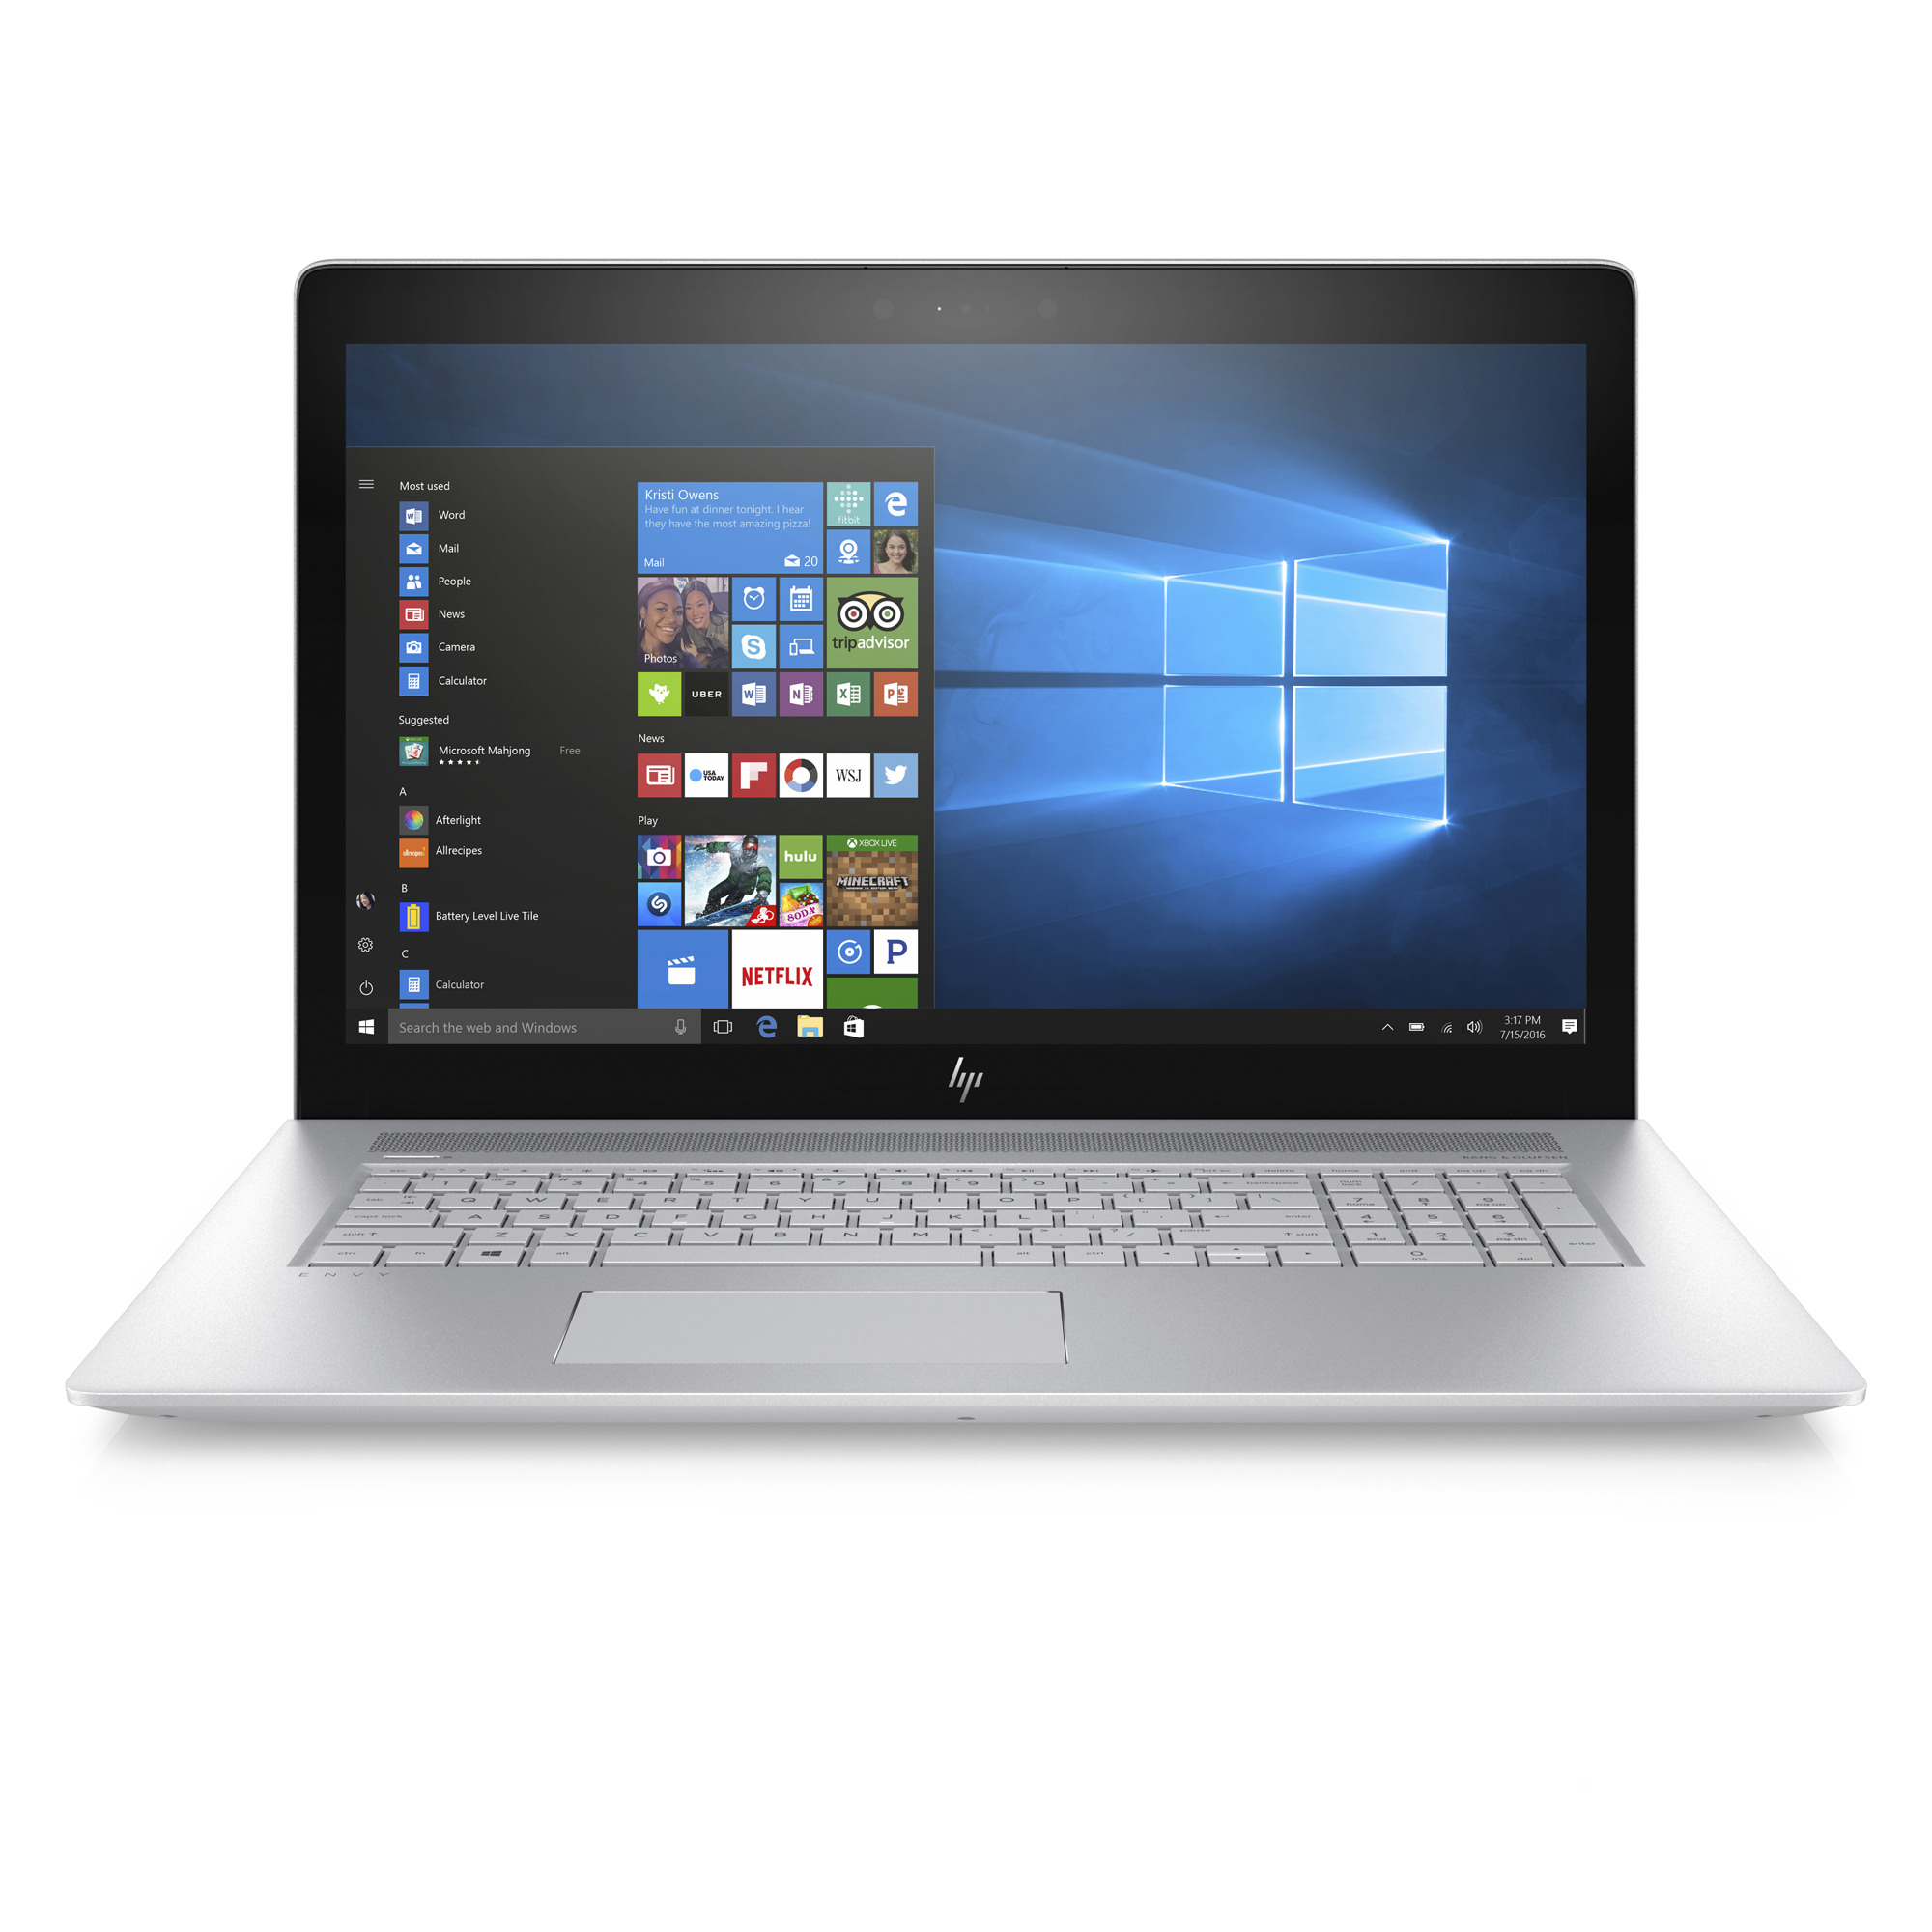 HP Envy 17-AE110NR Natural Silver 17.3 inch Touch Laptop, Windows 10, Core i7-8550U QC Processor, 12GB Memory, 1TB Hard Drive, DSC MX150 4GB Graphics, DVD, Backlit, Bang & Olufsen